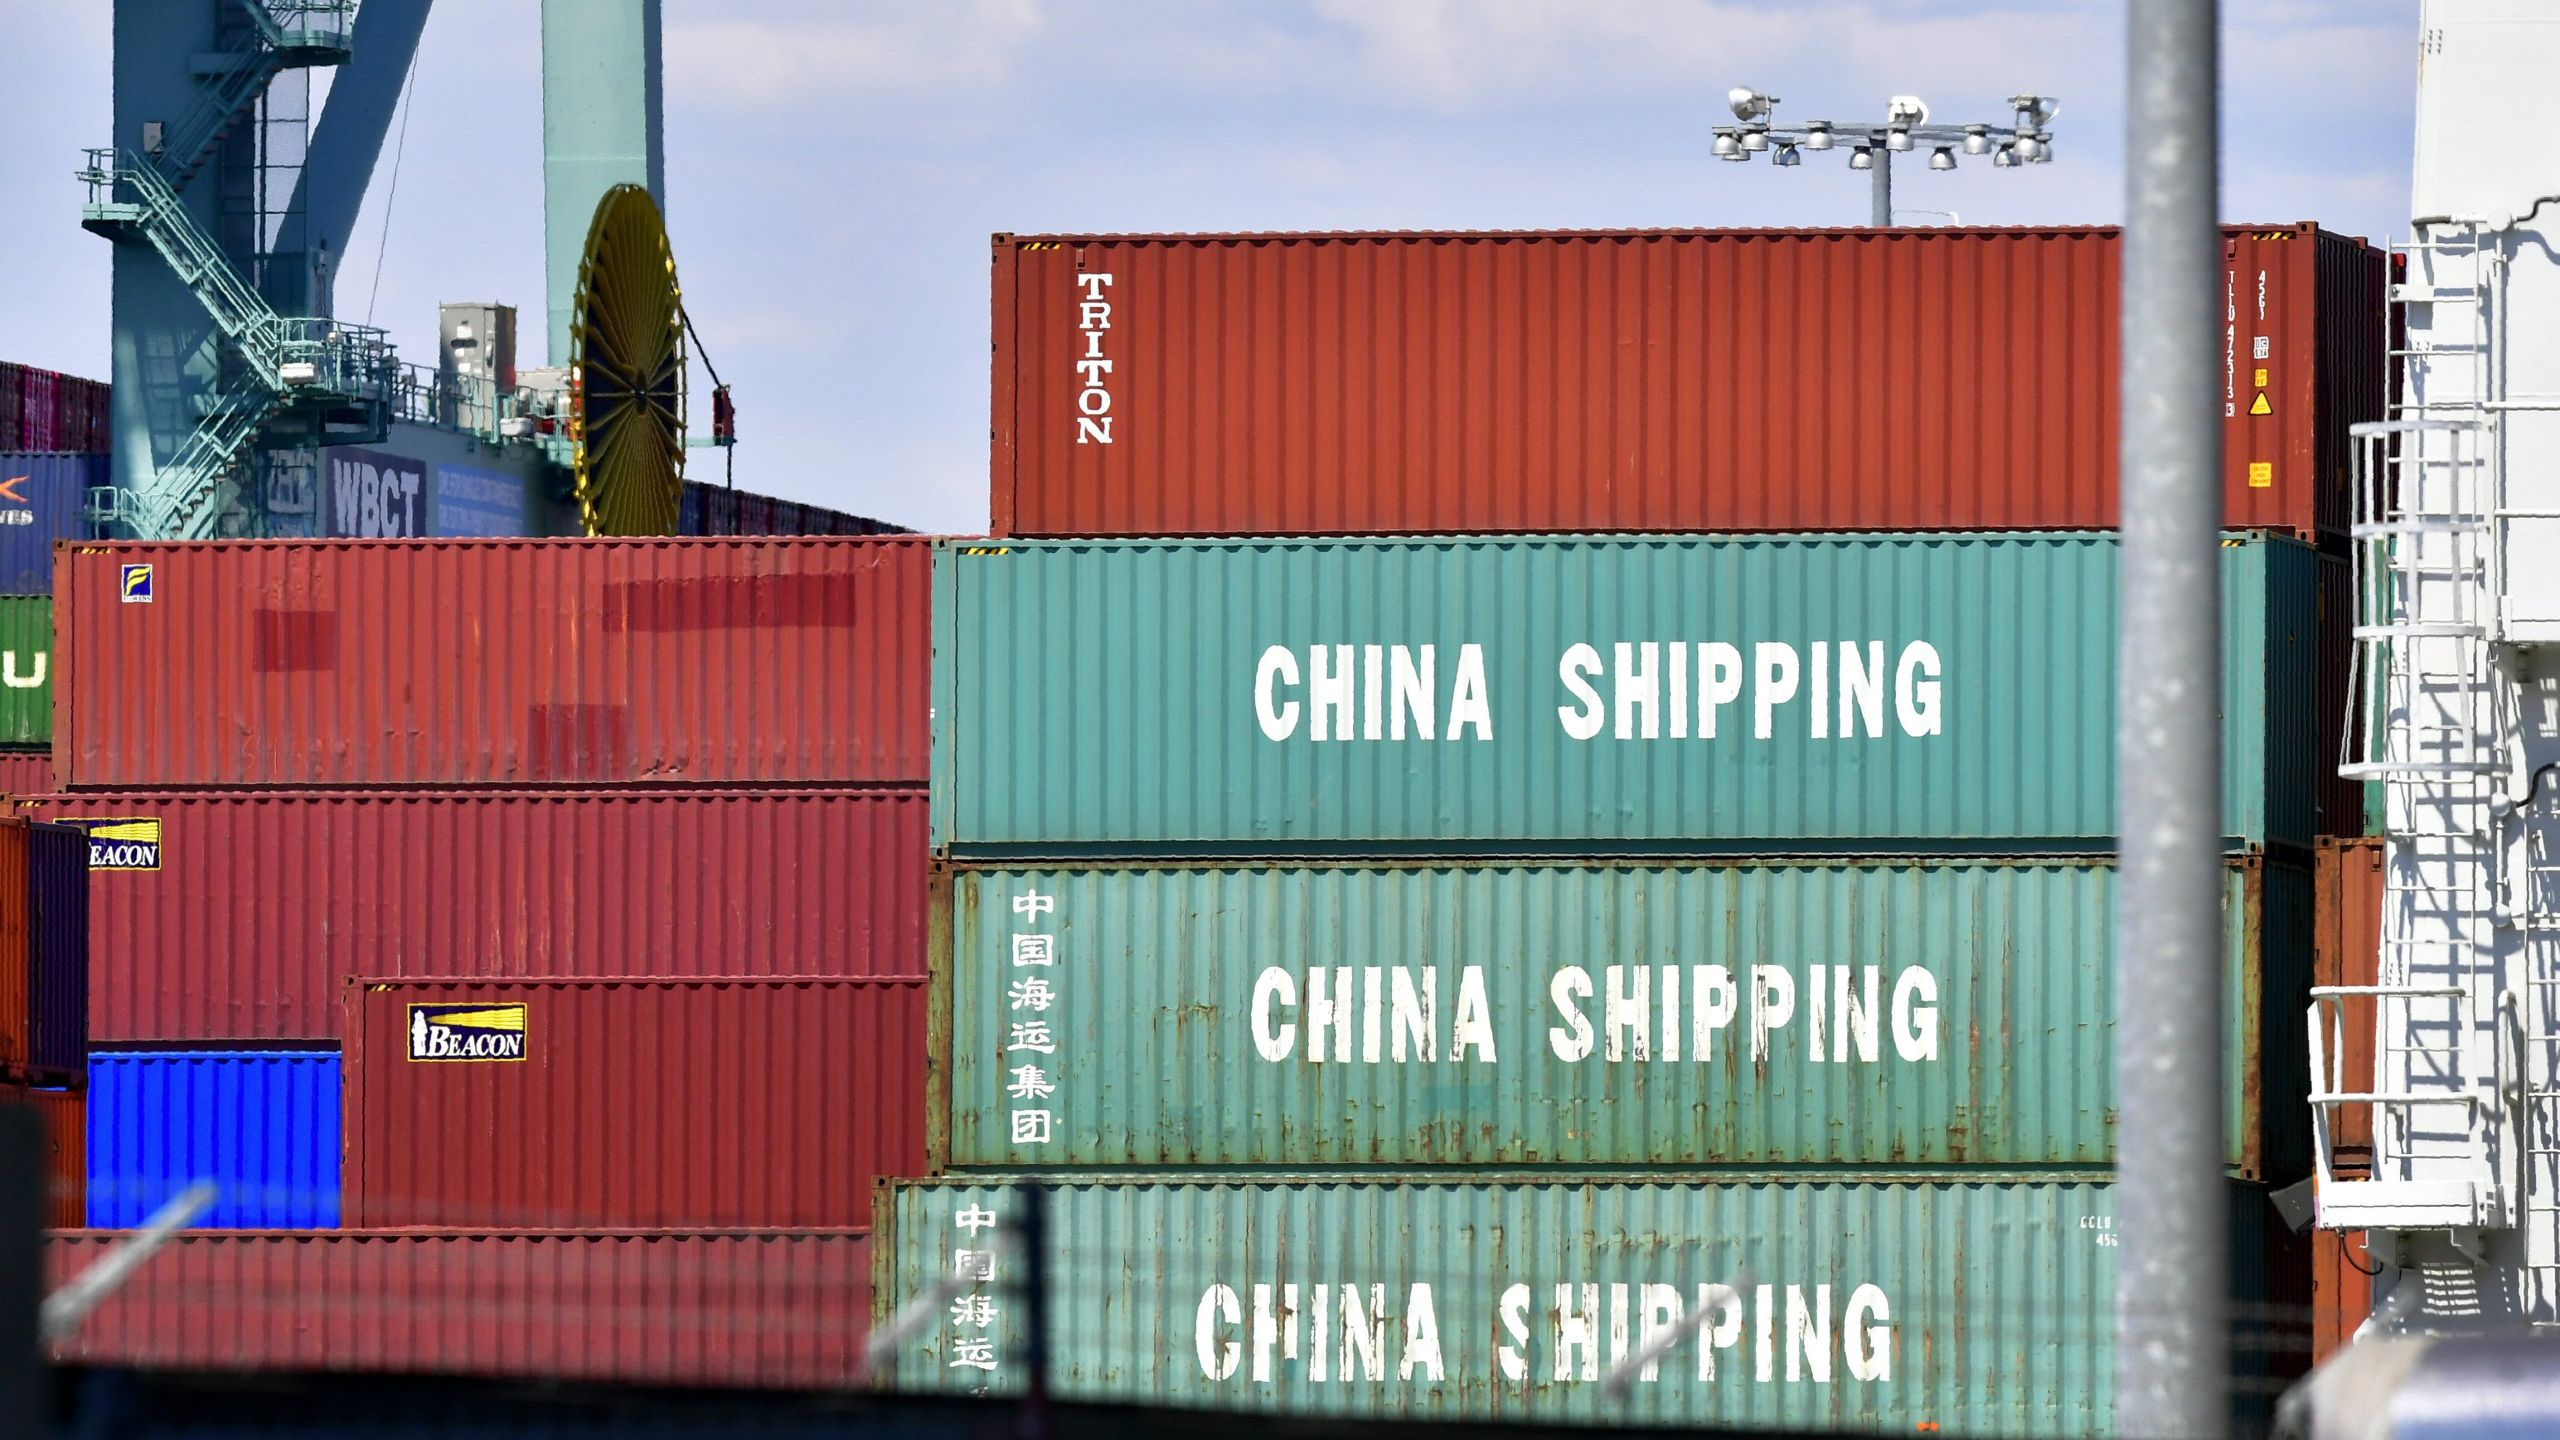 Containers are stacked on a vessel at the Port of Long Beach on July 6, 2018, including some from China Shipping, a conglomerate under the direct administration of China's State Council. (Credit: FREDERIC J. BROWN/AFP/Getty Images)